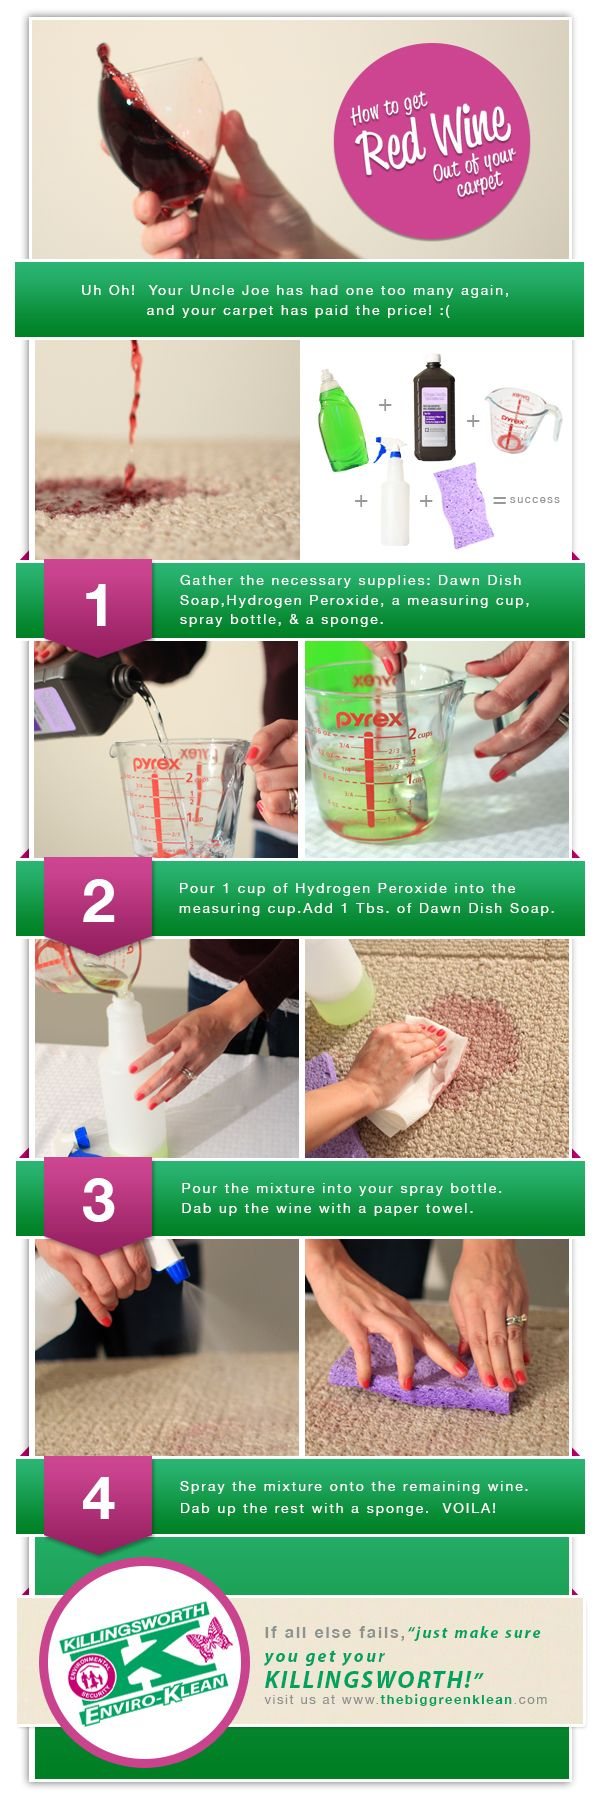 How to get Red Wine out of your carpet.   How to clean carpet